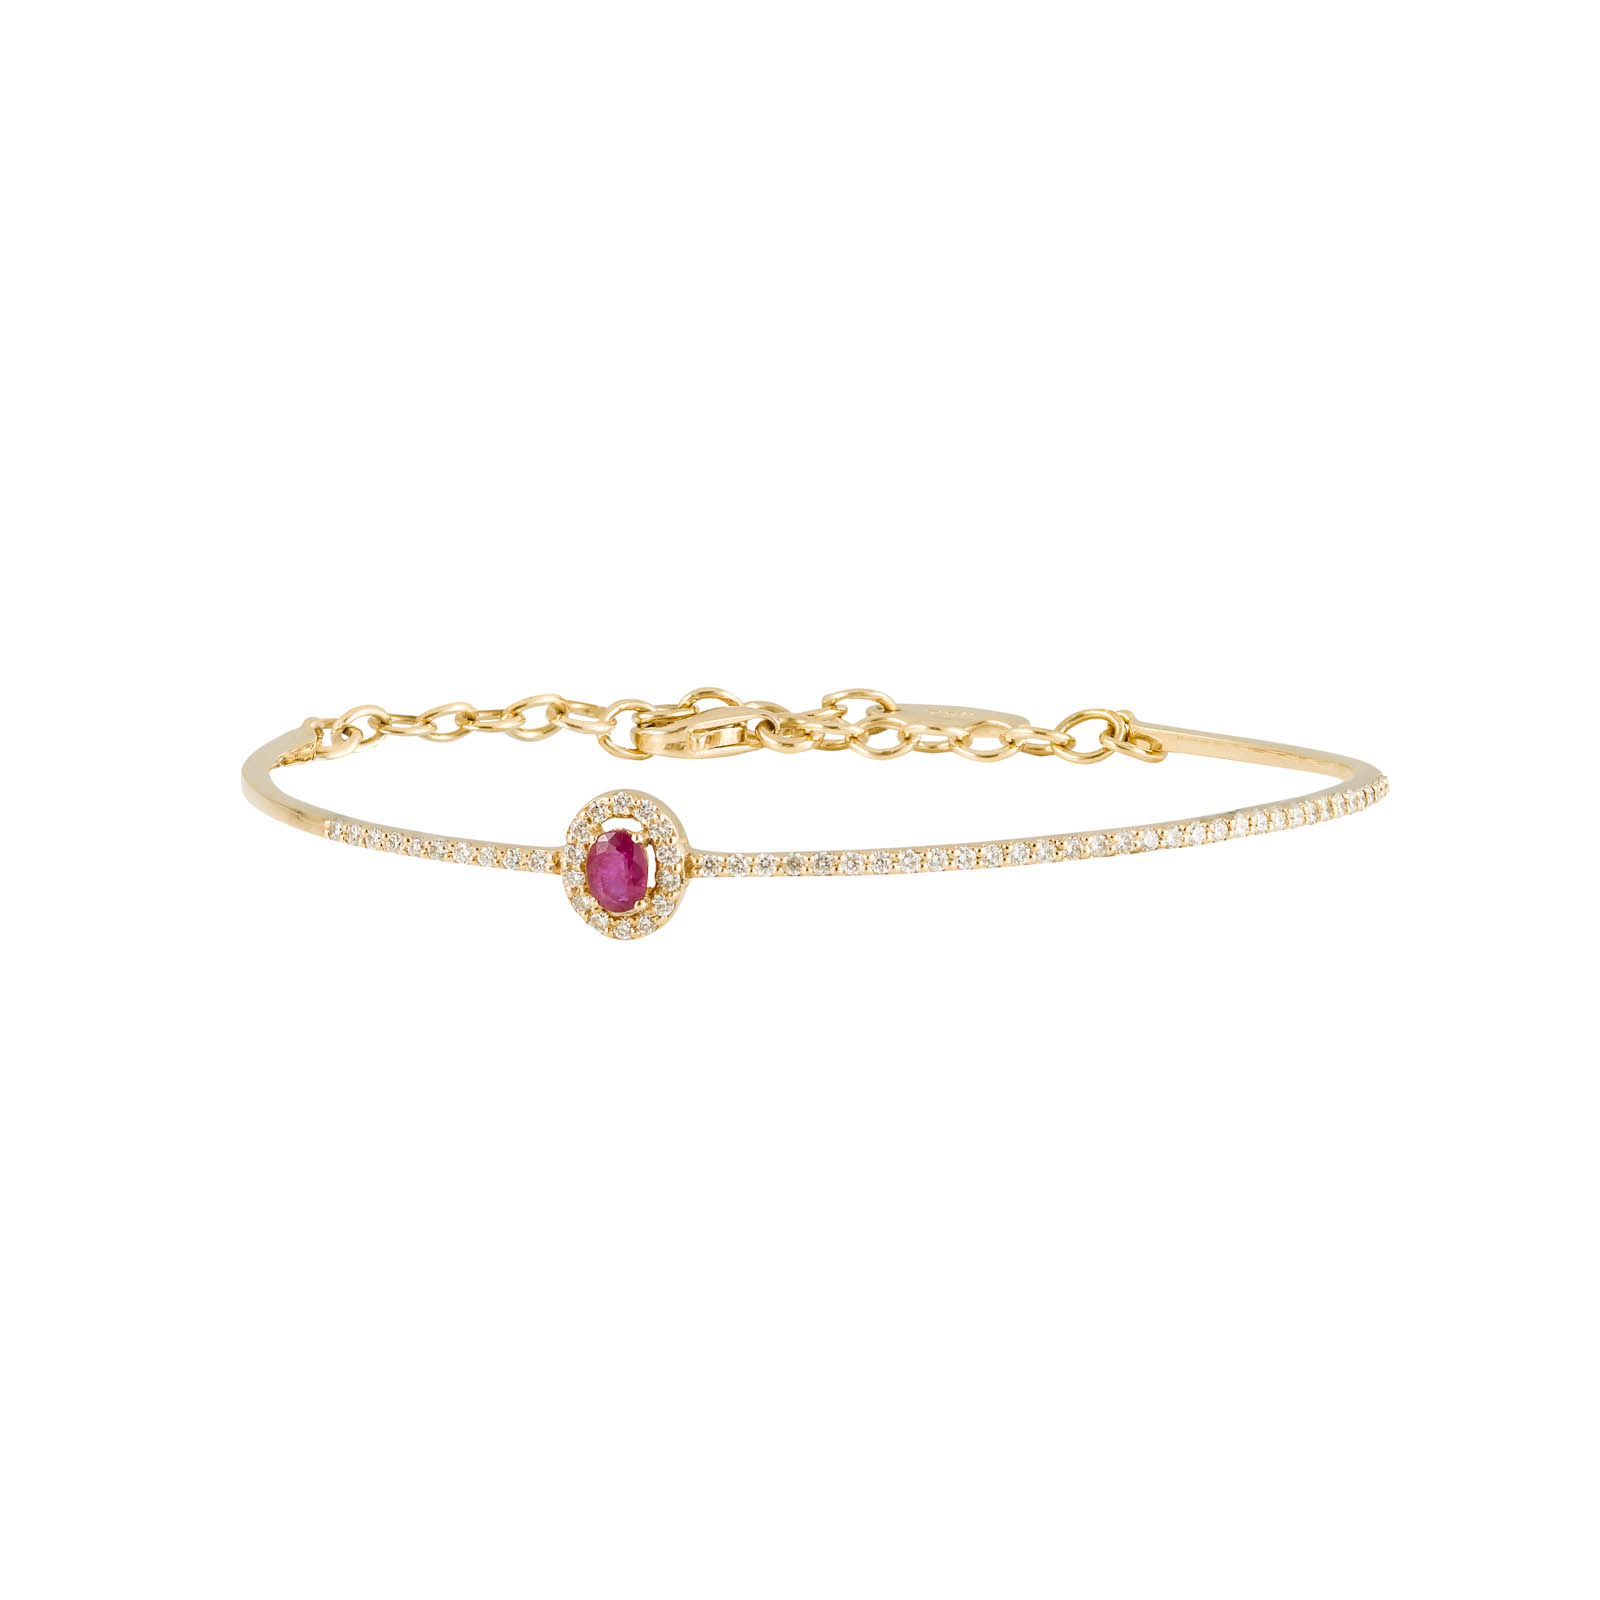 Ellipse Bangle – Ruby and Diamond Yellow Gold by DAOU JEWELLERY on curated-crowd.com